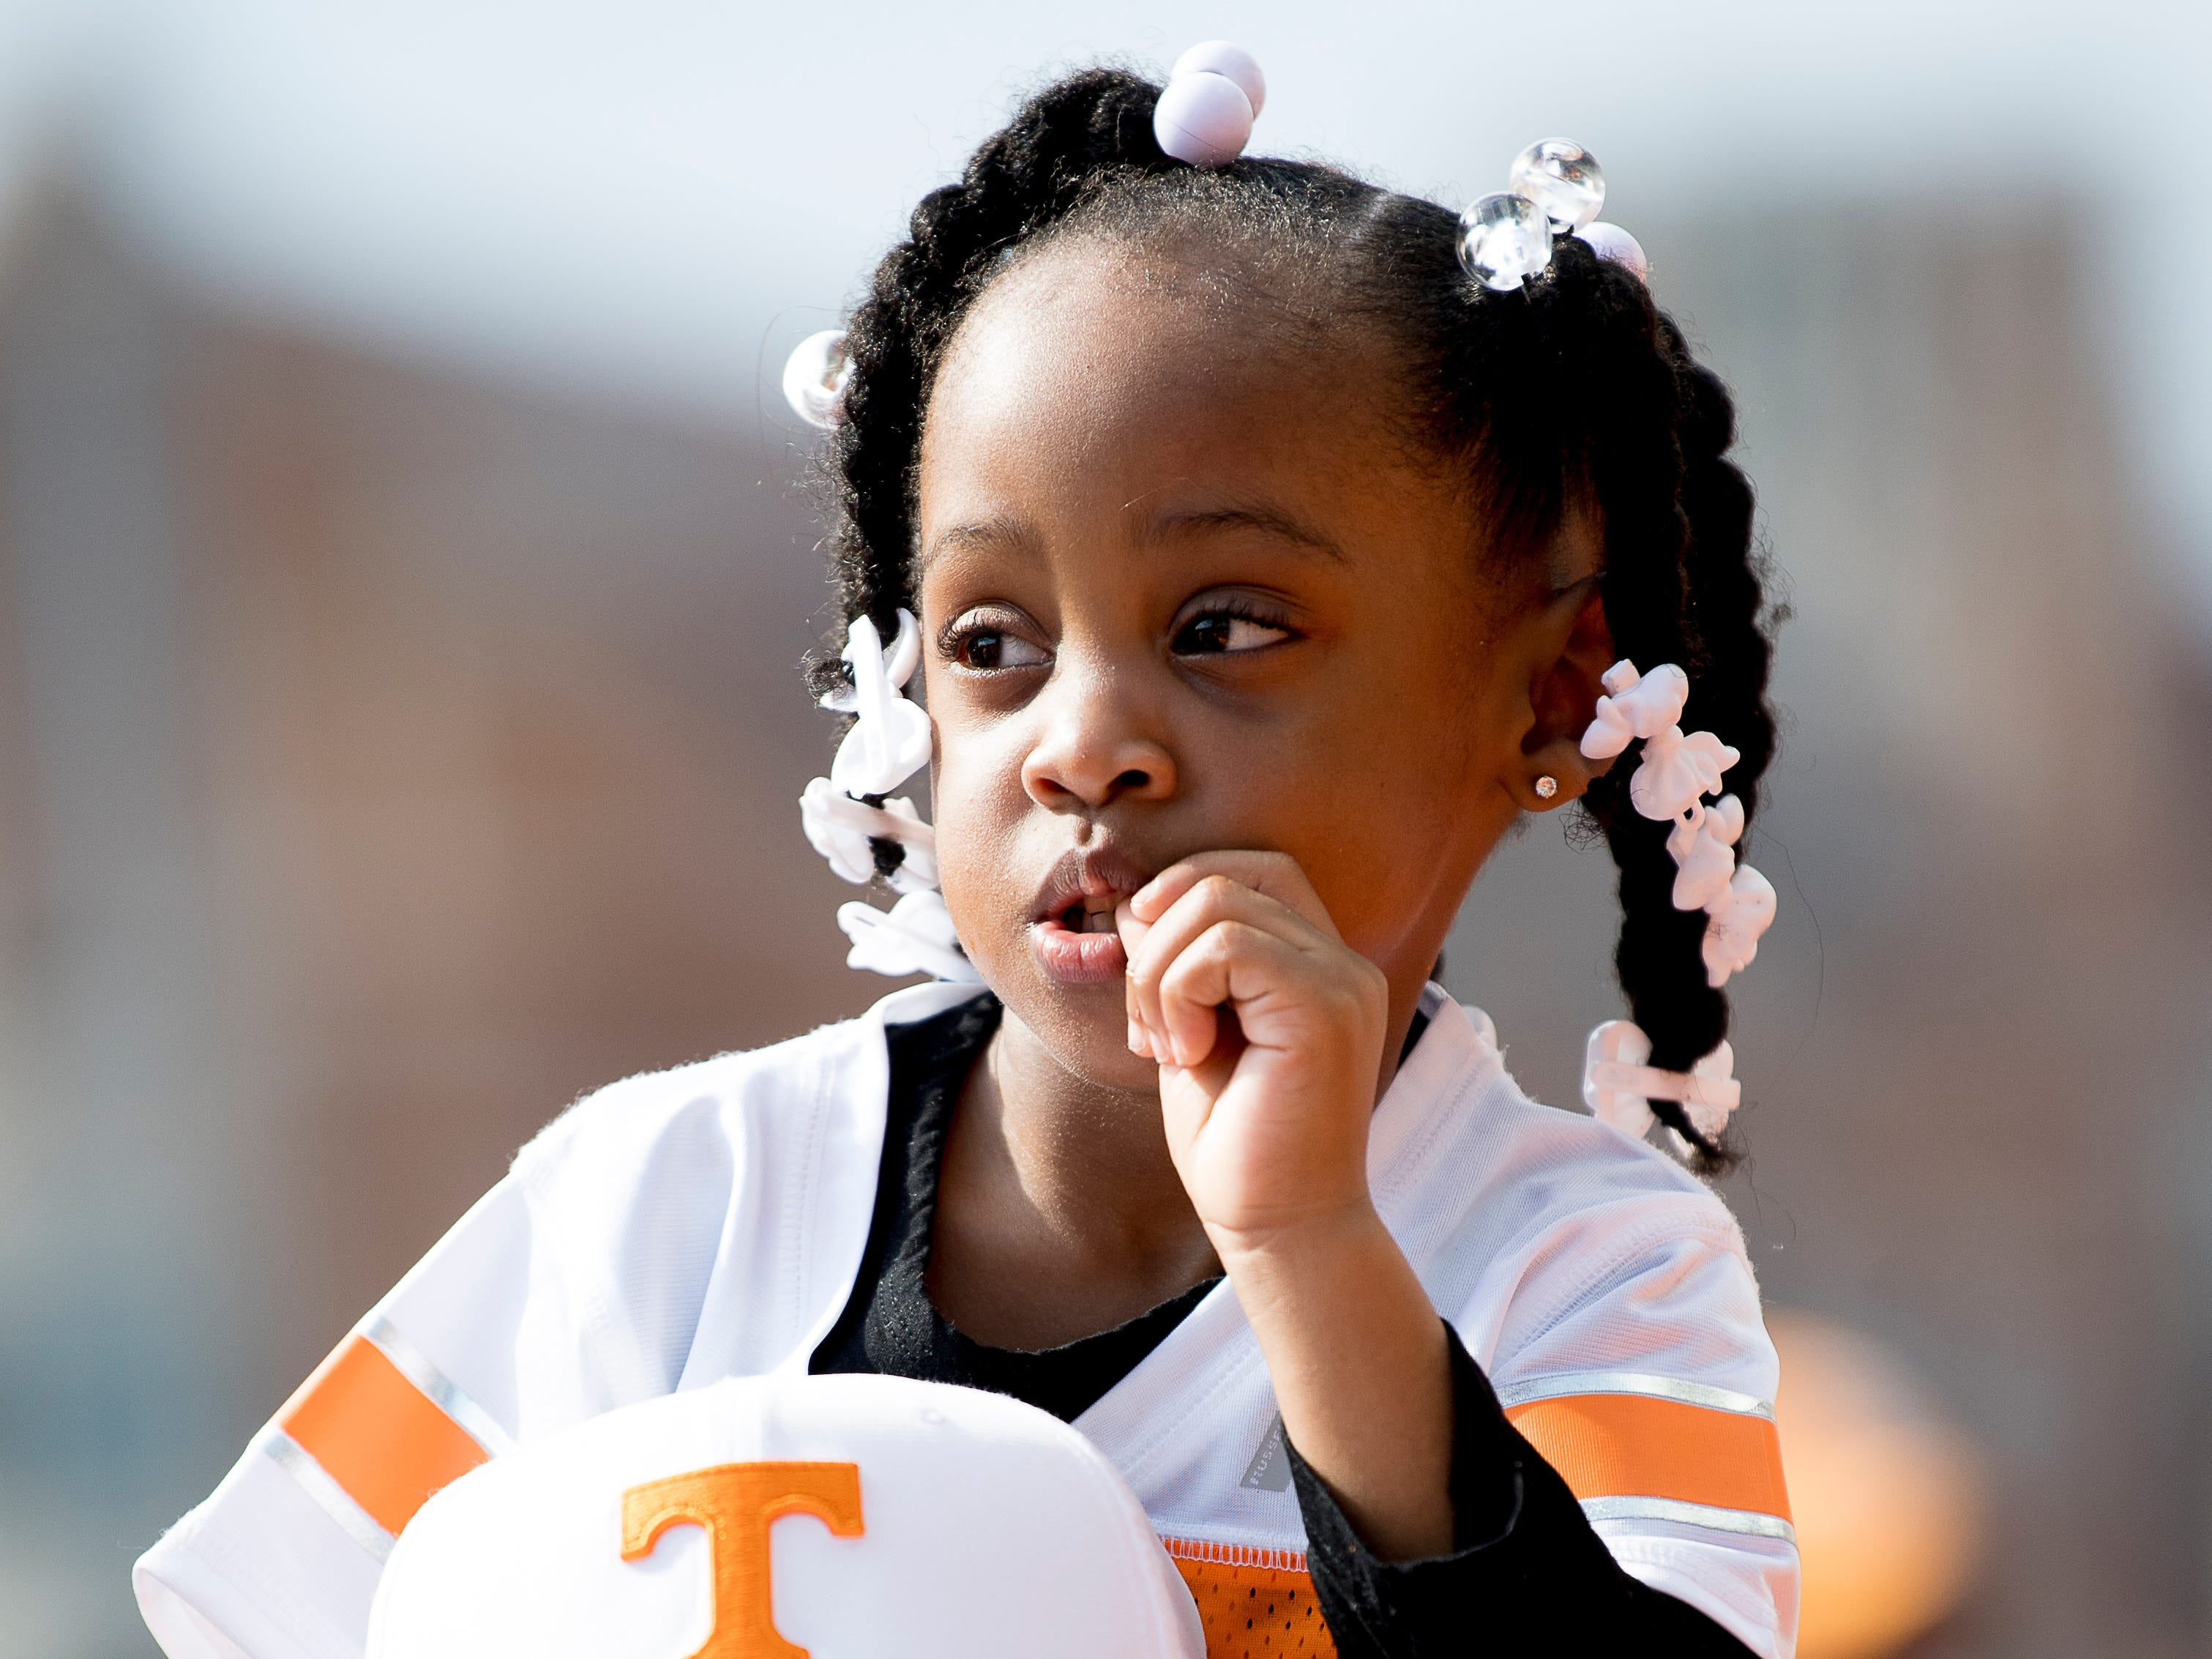 A young fan gets a better view during the Vol Walk at the Tennessee Spring Game at Neyland Stadium in Knoxville, Tennessee on Saturday, April 13, 2019.